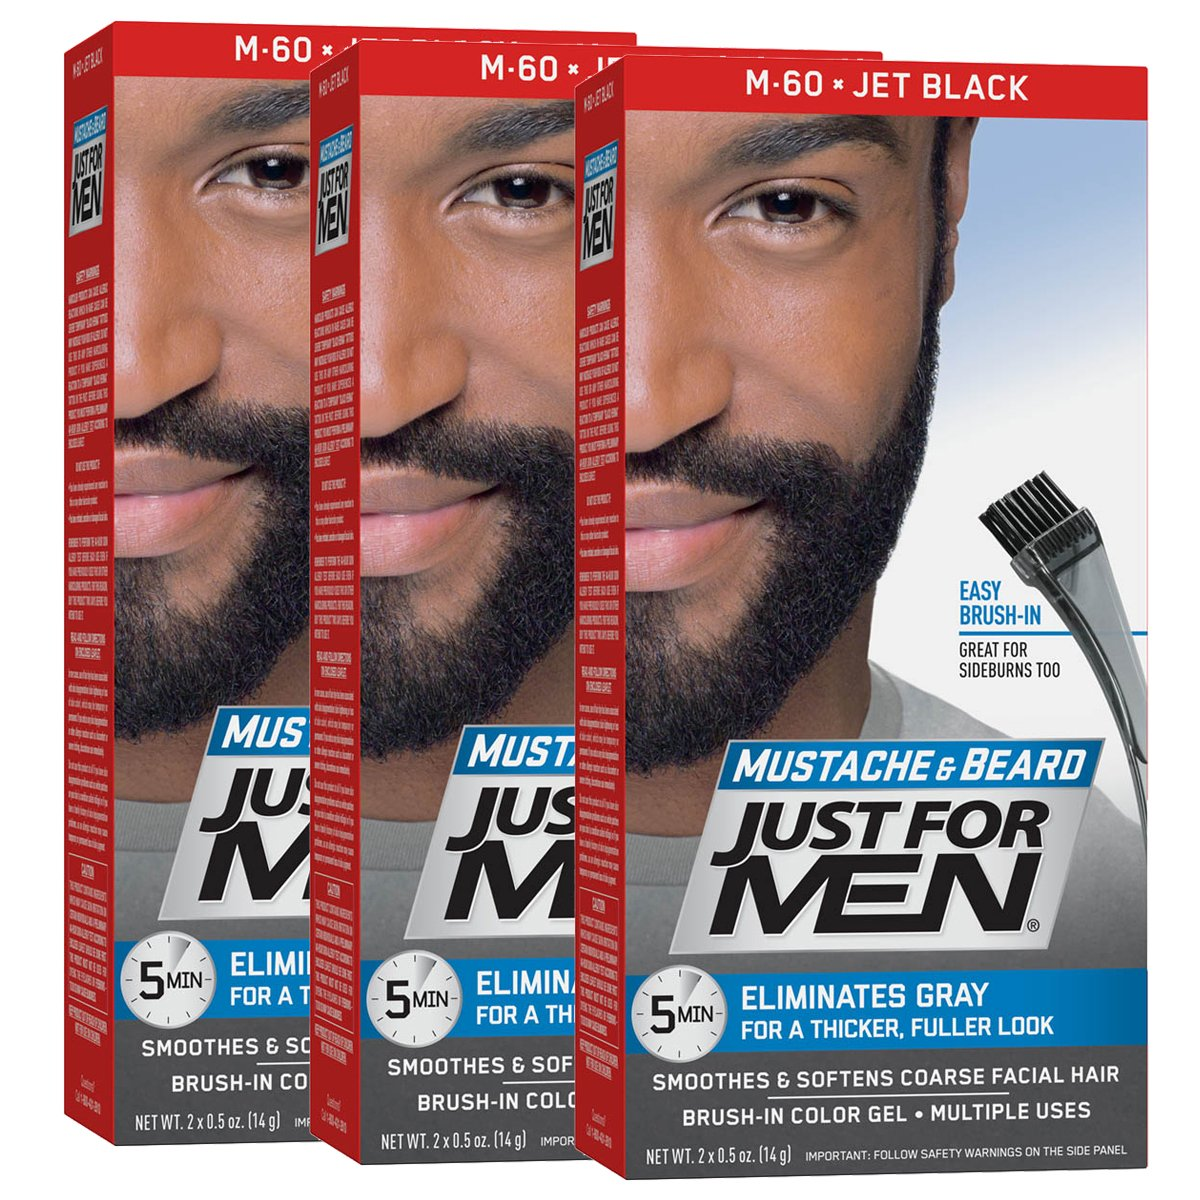 Just For Men Mustache & Beard Color, Beard Coloring for Men, Jet Black  (Pack of 3)